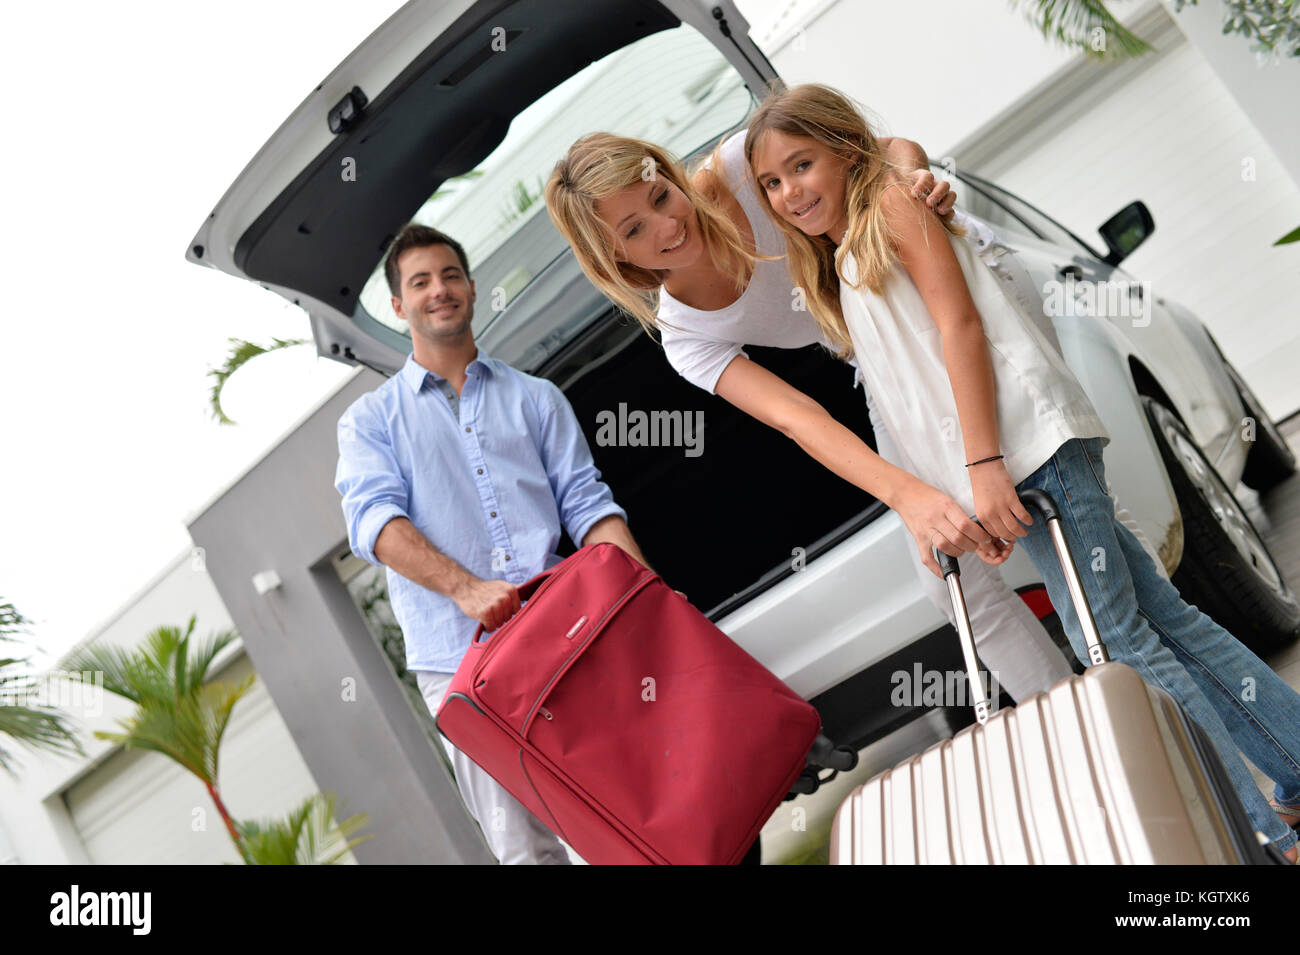 Parents with child putting luggage in car trunk - Stock Image